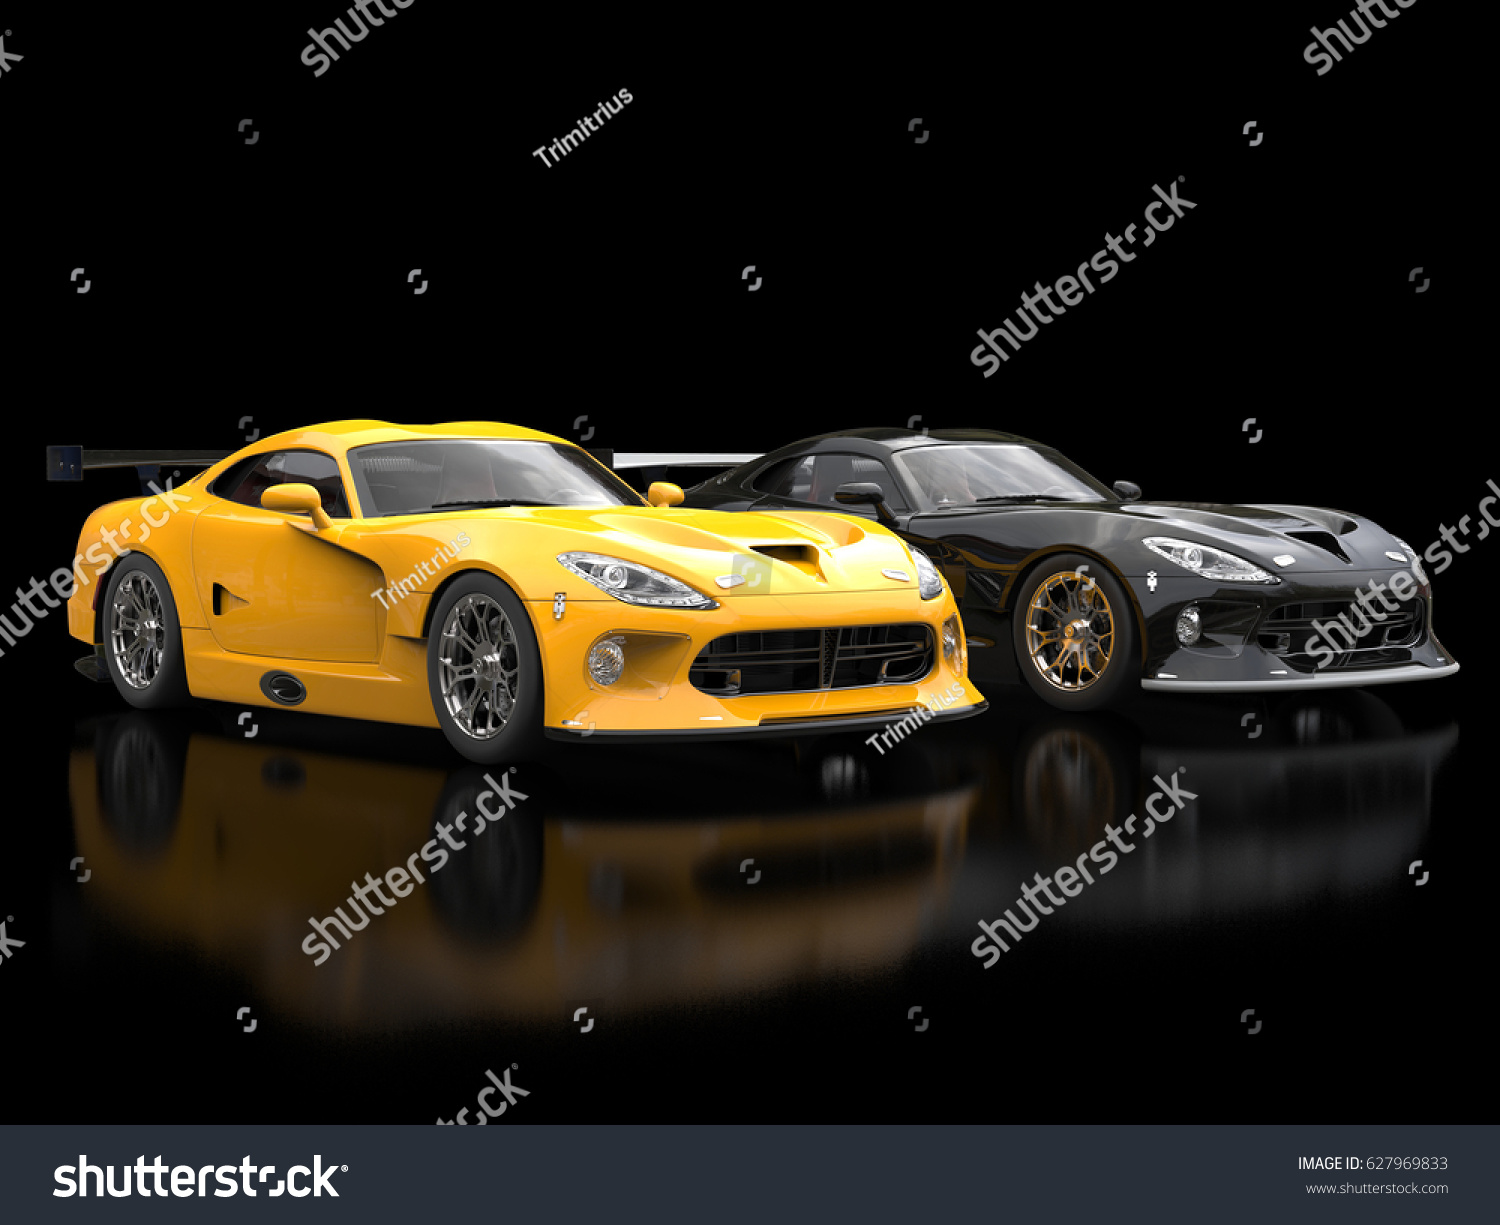 Modern Sports Cars Black Yellow Nice Stock Illustration - Modern sports cars